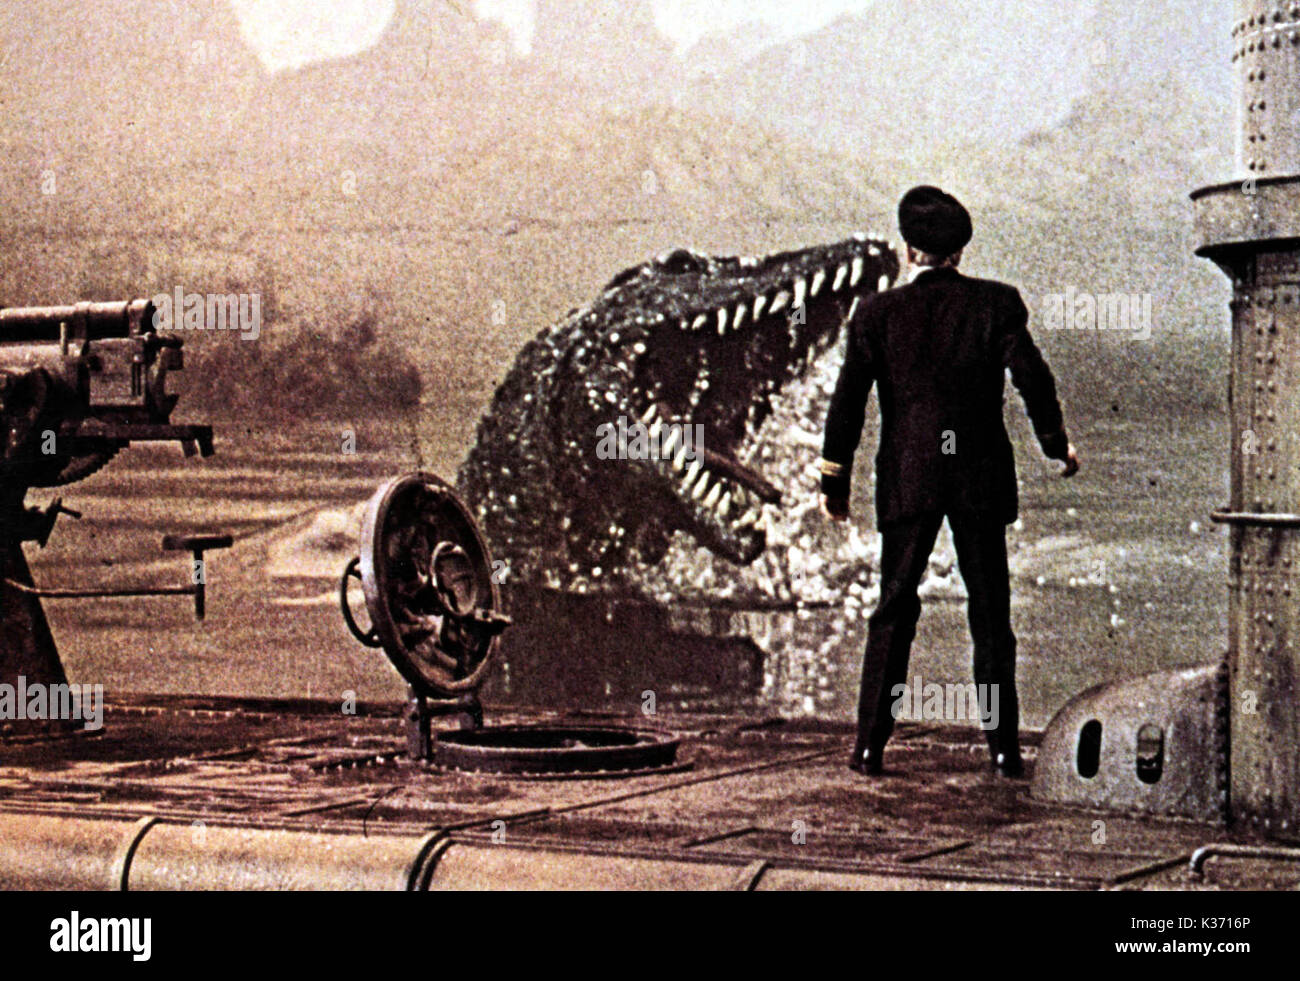 THE LAND THAT TIME FORGOT LOCH NESS MONSTER     Date: 1975 - Stock Image